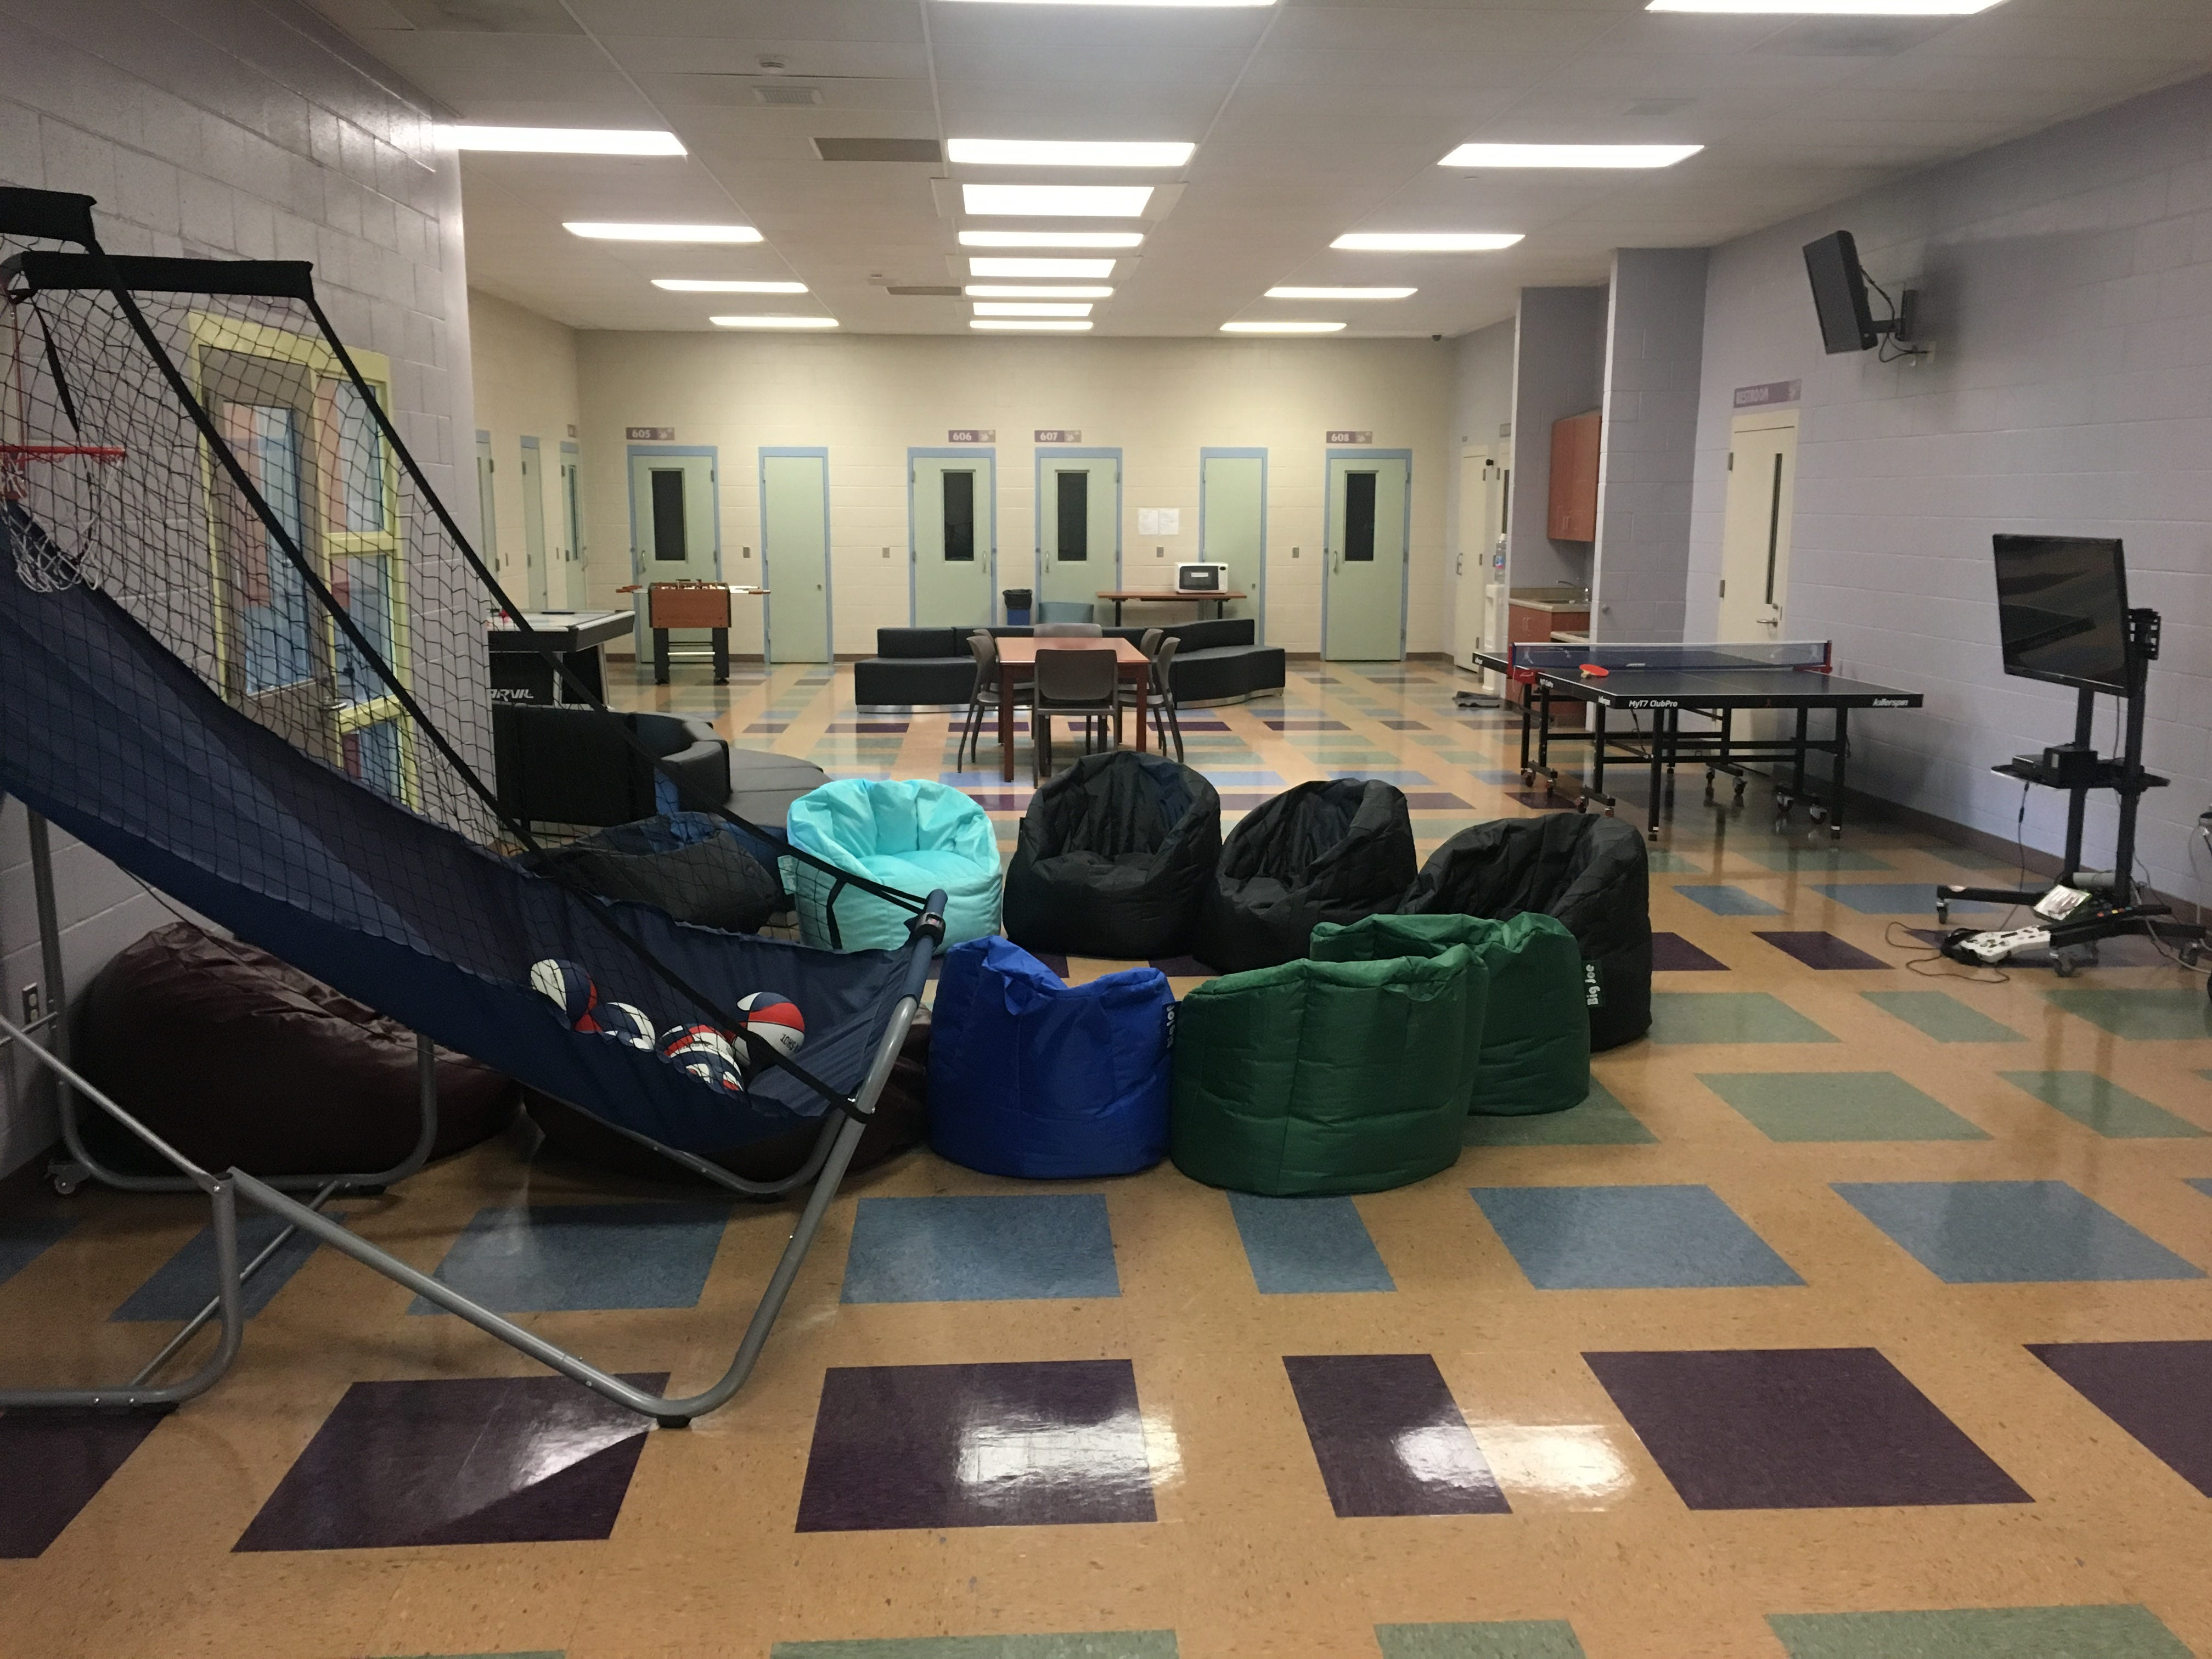 A common area at Ventura County Juvenile Hall in El Rio includes bean bag chairs and games. Youths can earn rewards such as movies and games through good behavior.